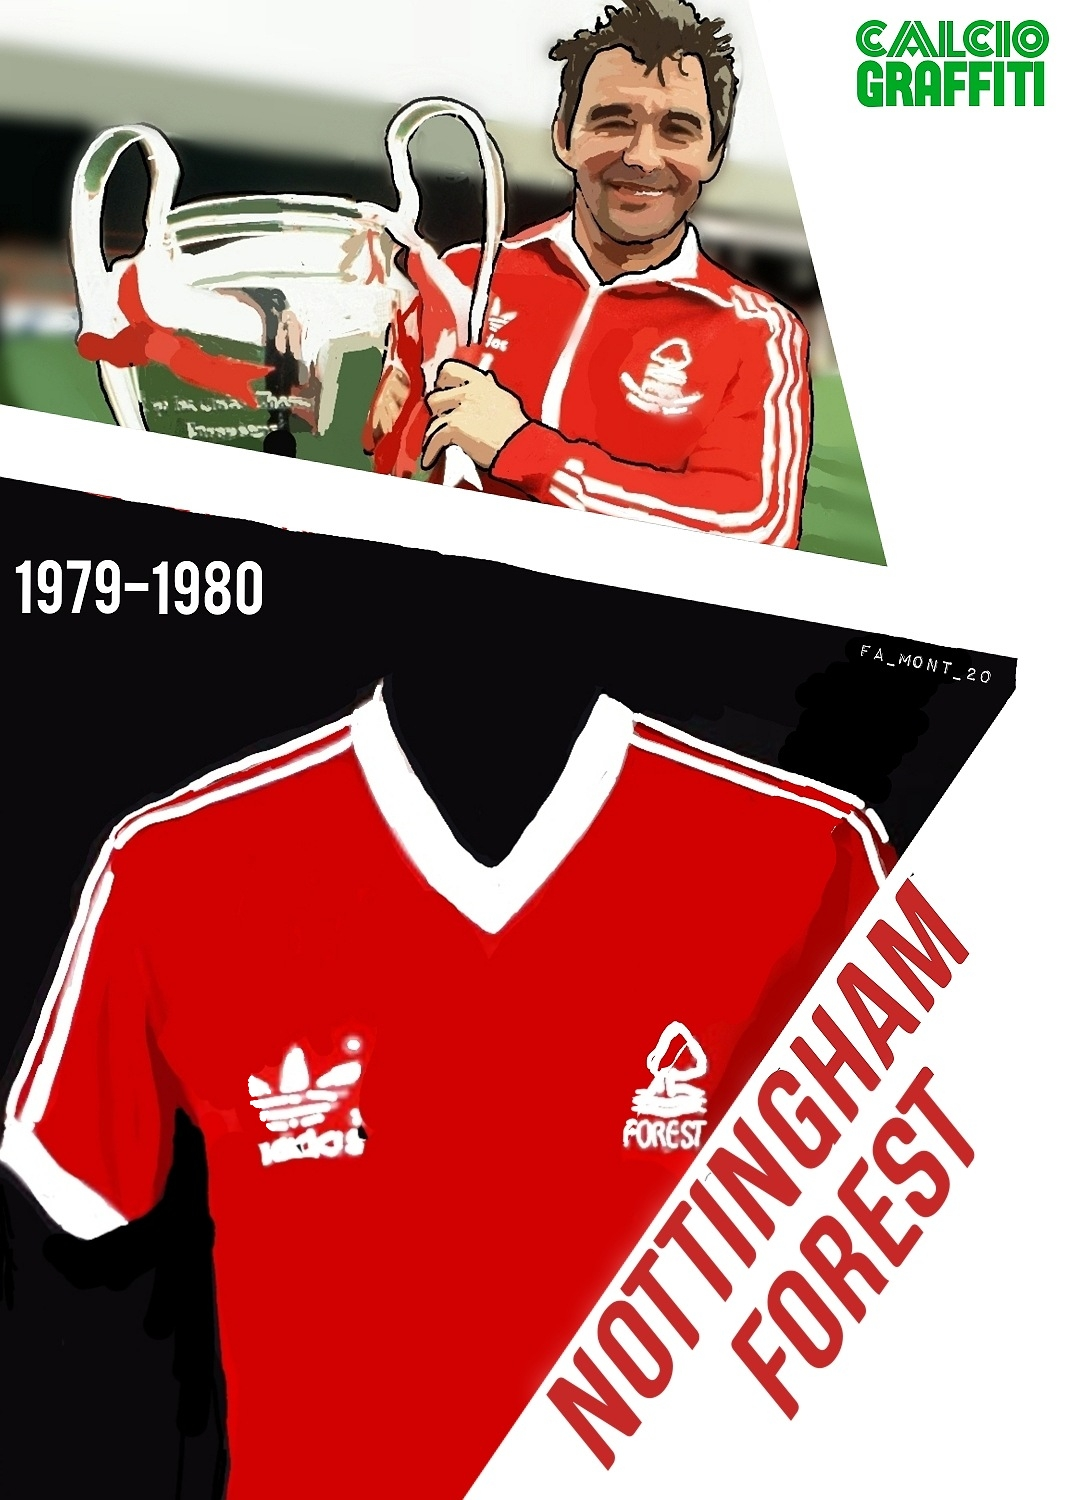 IL MIRACOLOSO NOTTINGHAM FOREST DI BRIAN CLOUGH